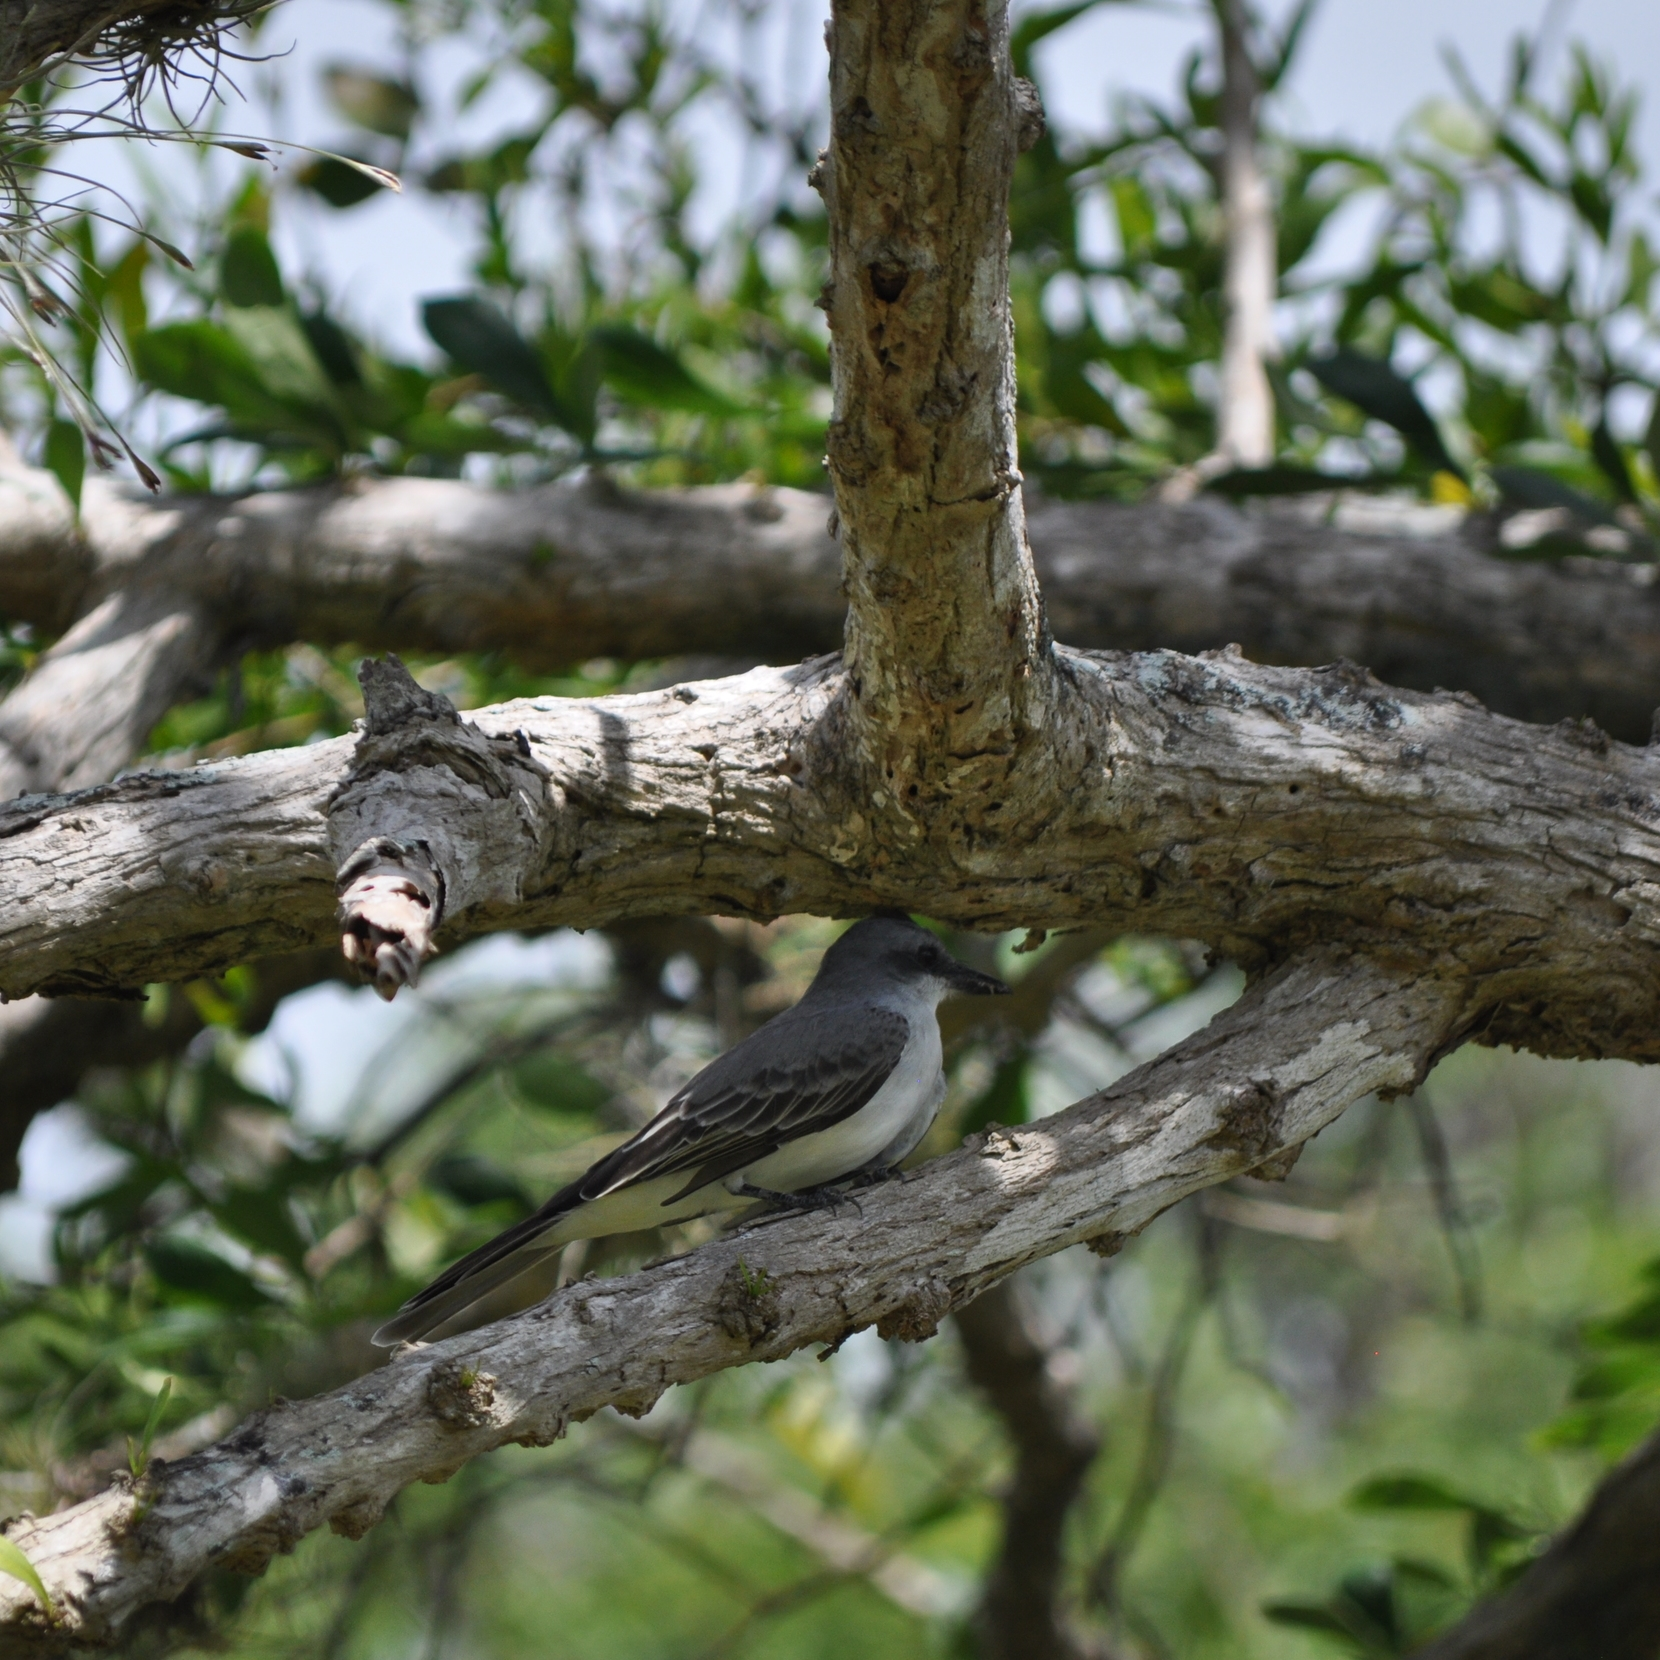 The Gray Kingbird is an extremely territorial bird, it is also known for its morning melody. Photo: Pamy Rojas